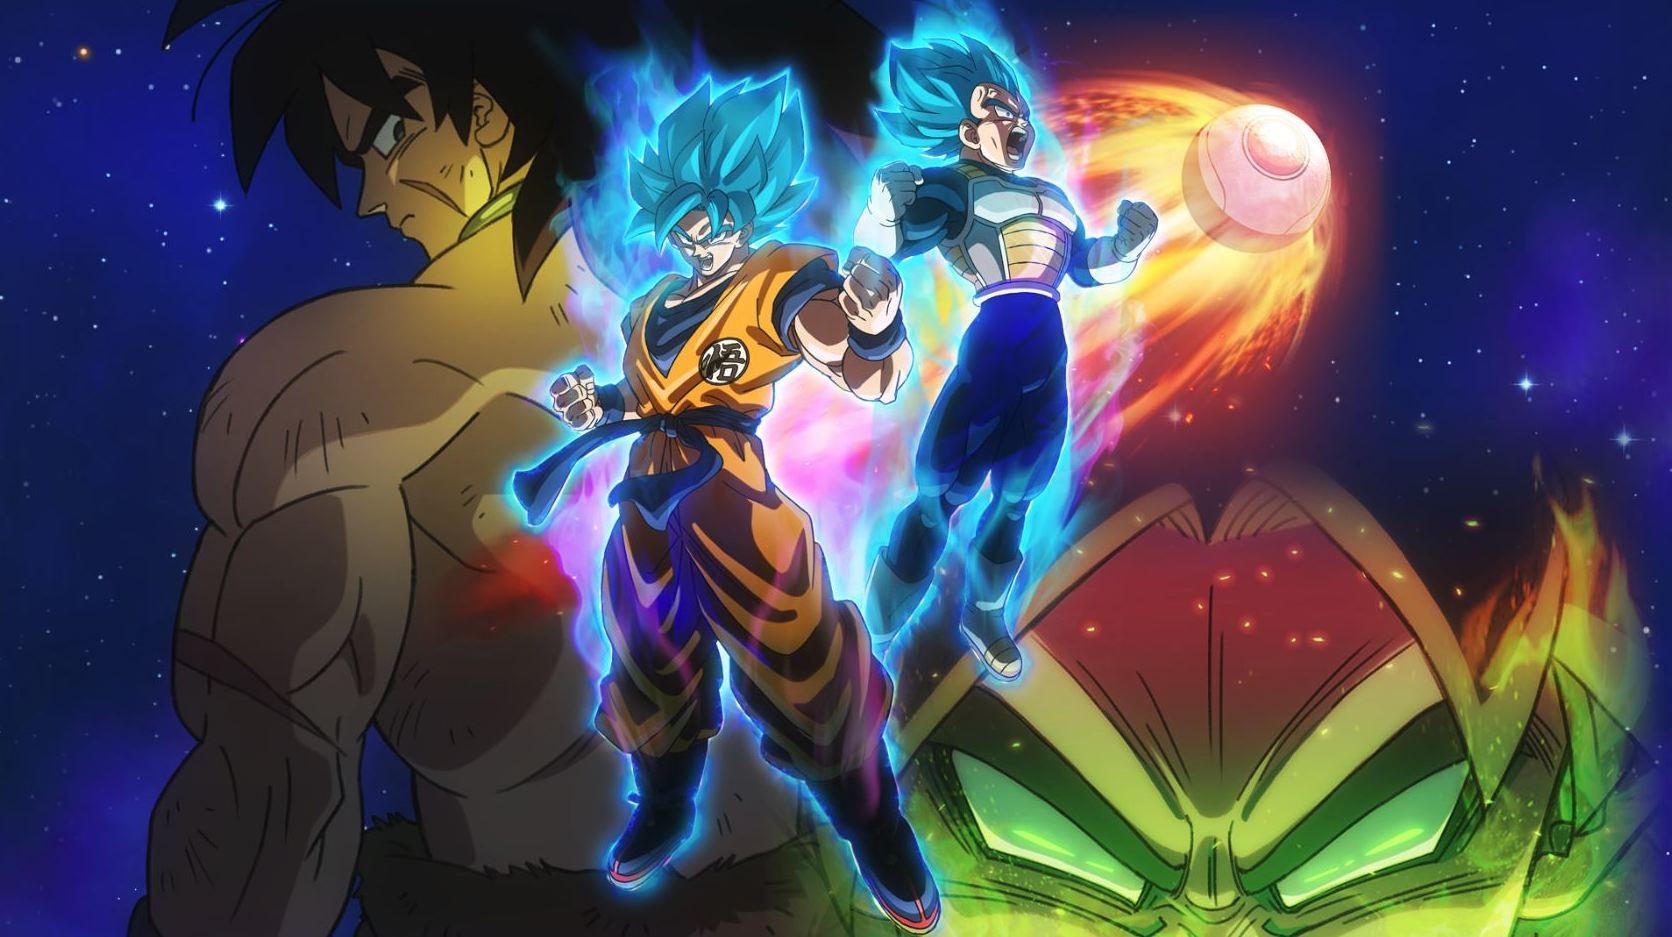 Dragon-Ball-Super-Broly-Movie characters